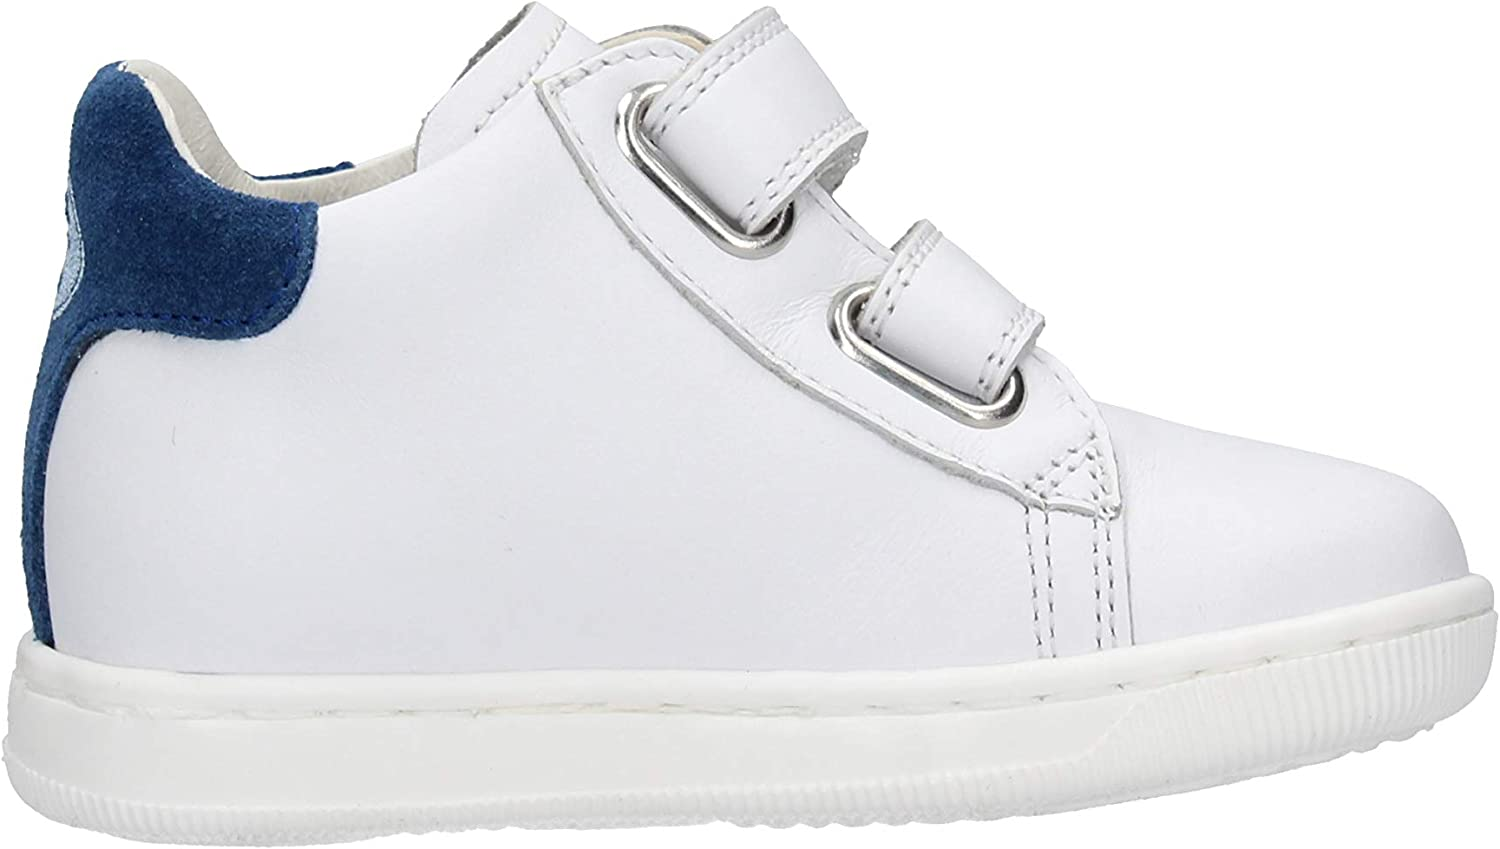 Falcotto Atley White Sneaker for Children ATLEY-1N06